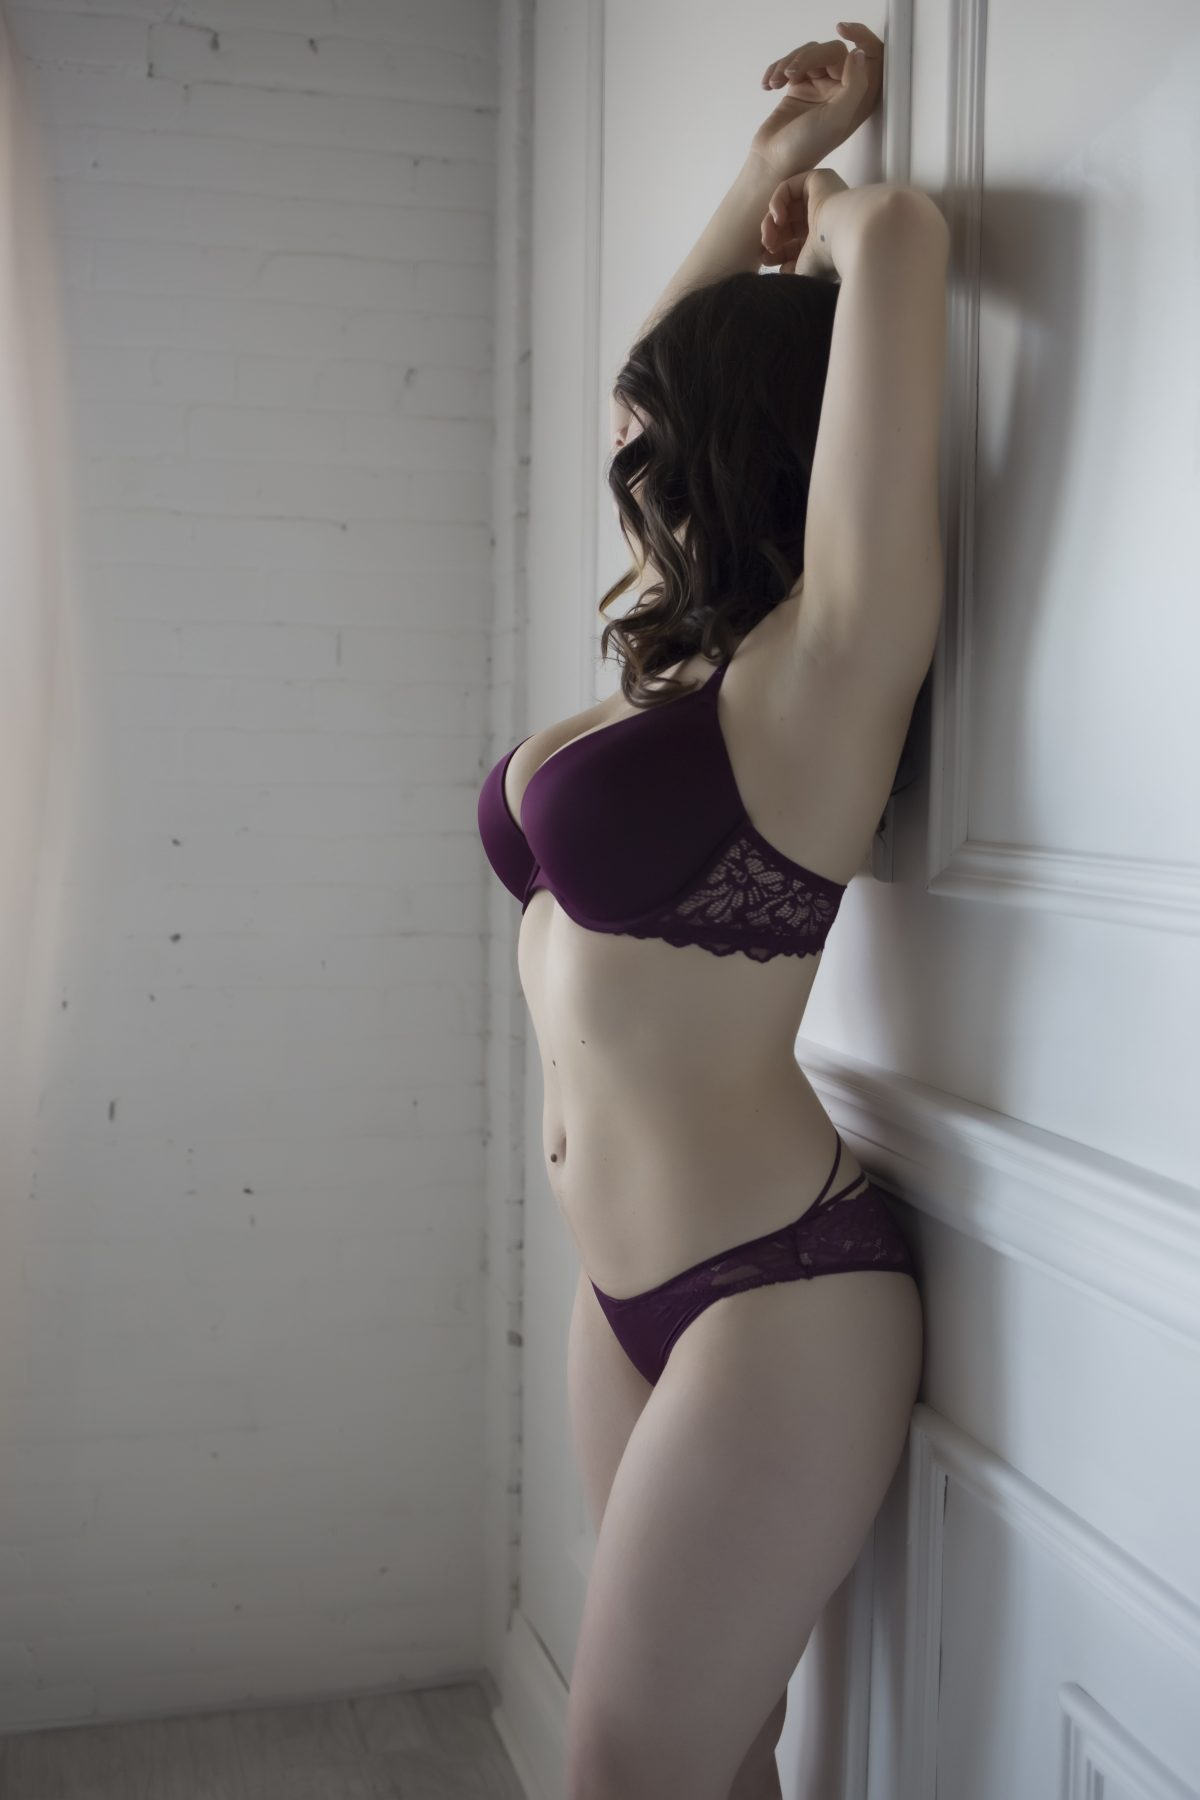 Toronto escorts companion upscale Alice Interests Duo Couple-friendly Disability-friendly Non-smoking Age Young Figure Tall Breasts Natural Hair Brunette Ethnicity European Tattoos Small Arrival